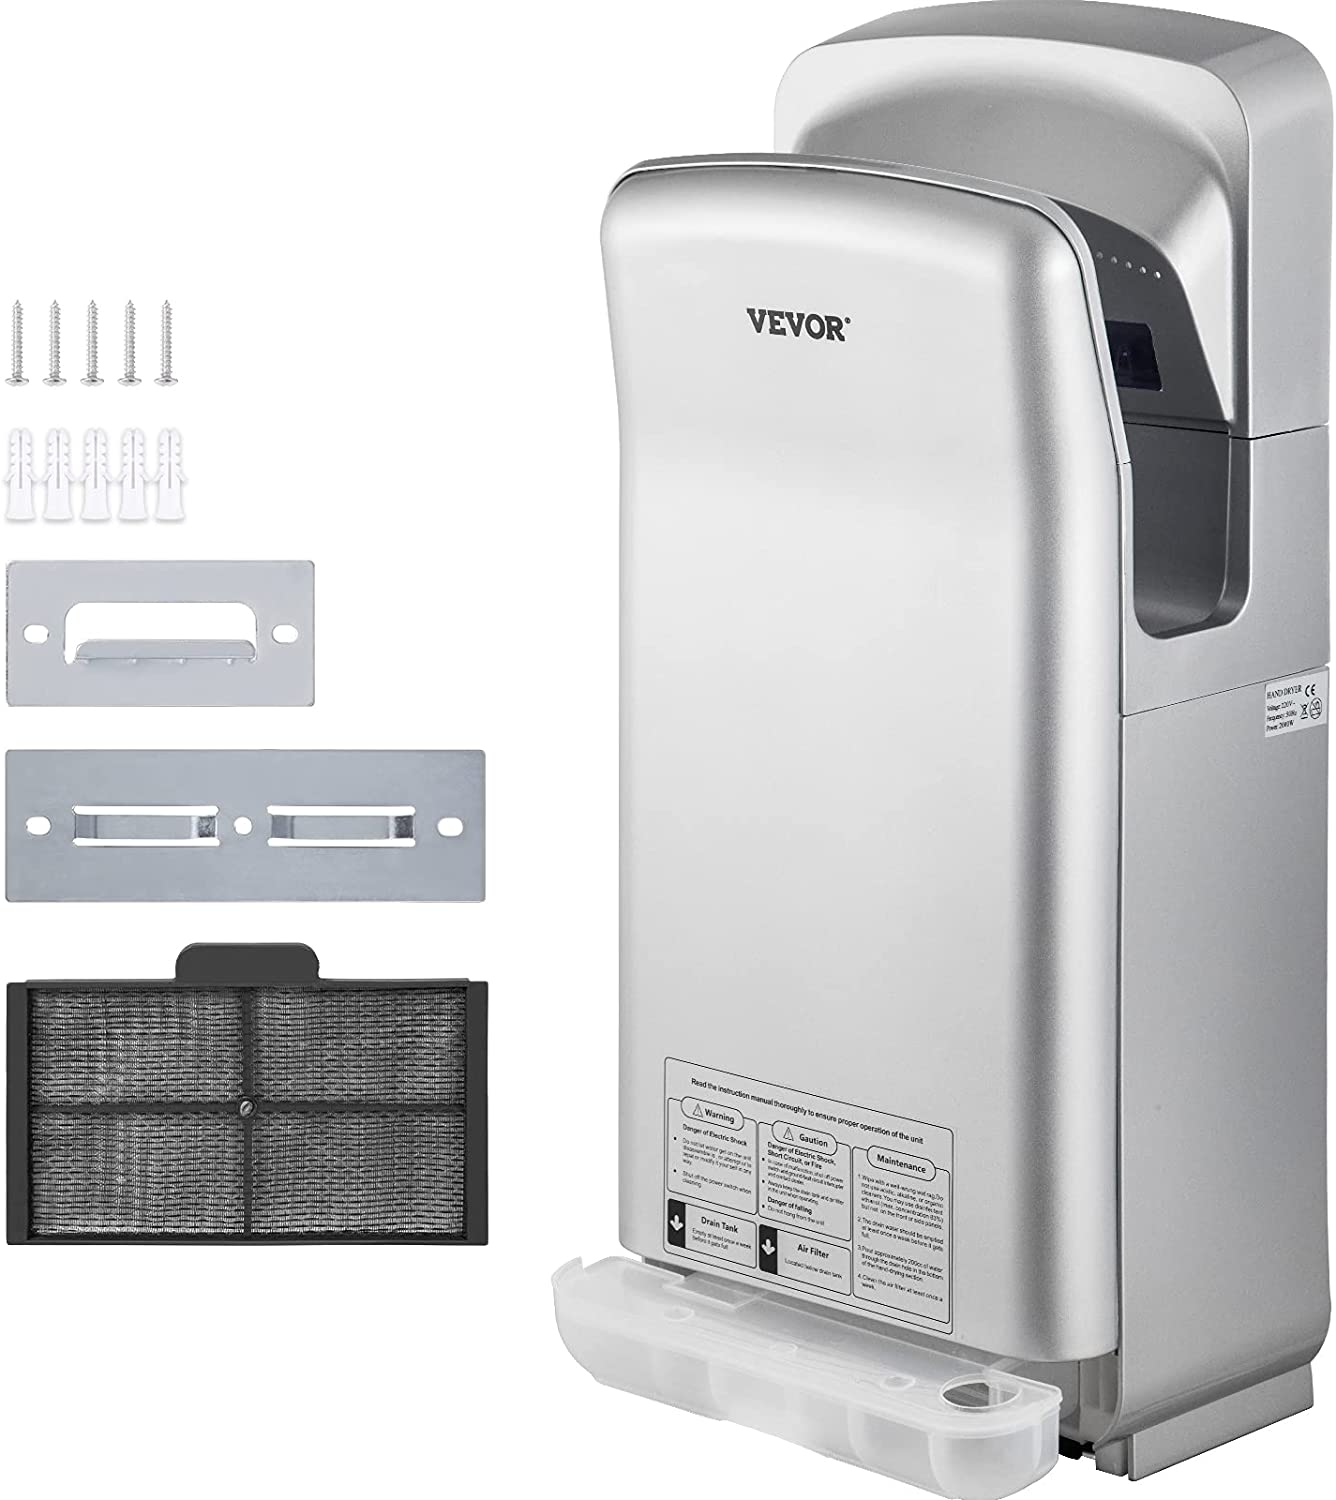 VEVOR Jet Hand Dryer Premium Dry NEW before selling Commercial Ranking TOP4 Blade Electric